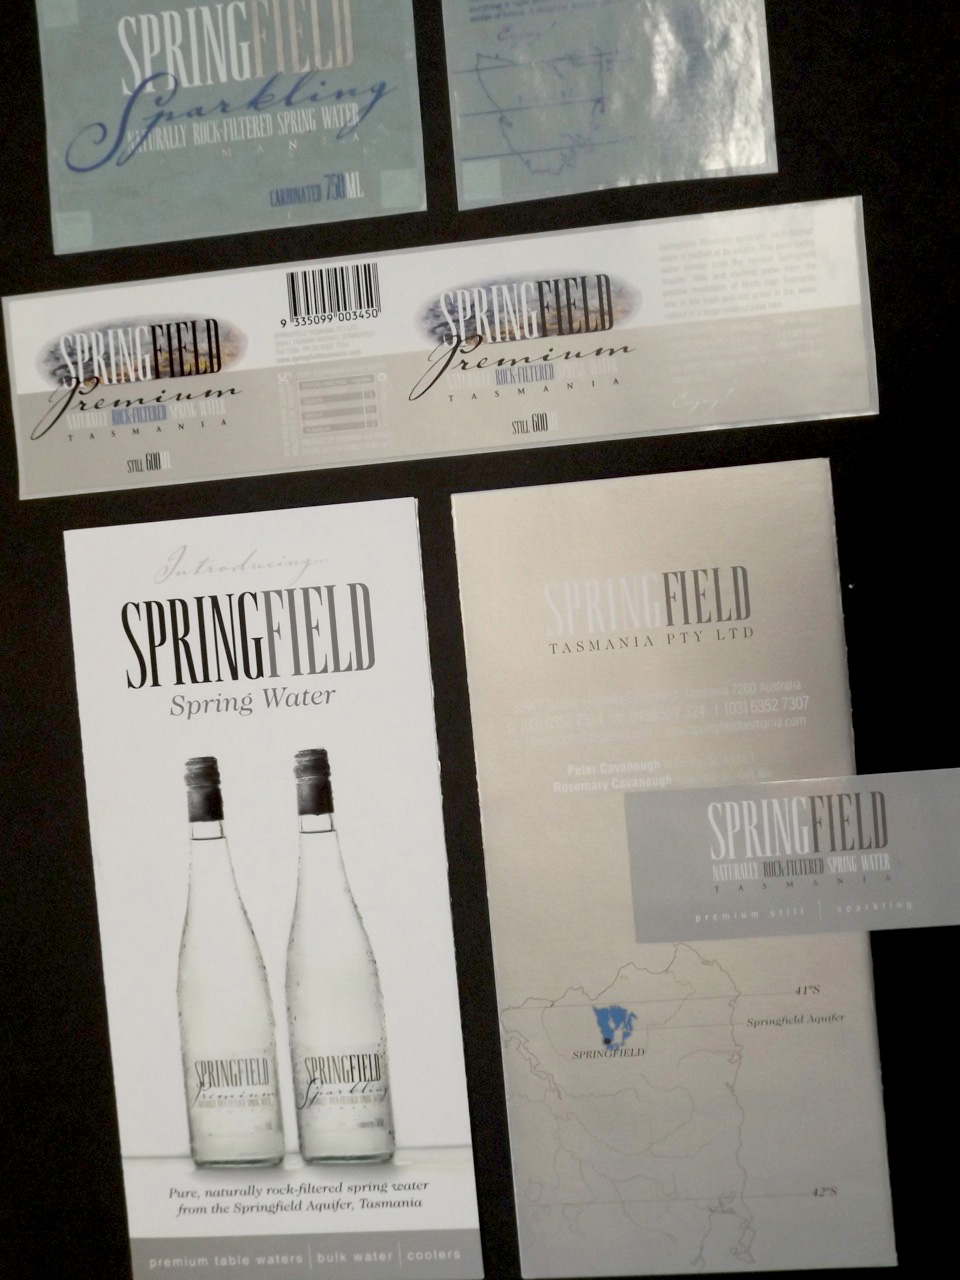 SPRINGFIELD SPRING WATER. Labels, business card, brochure and website design.